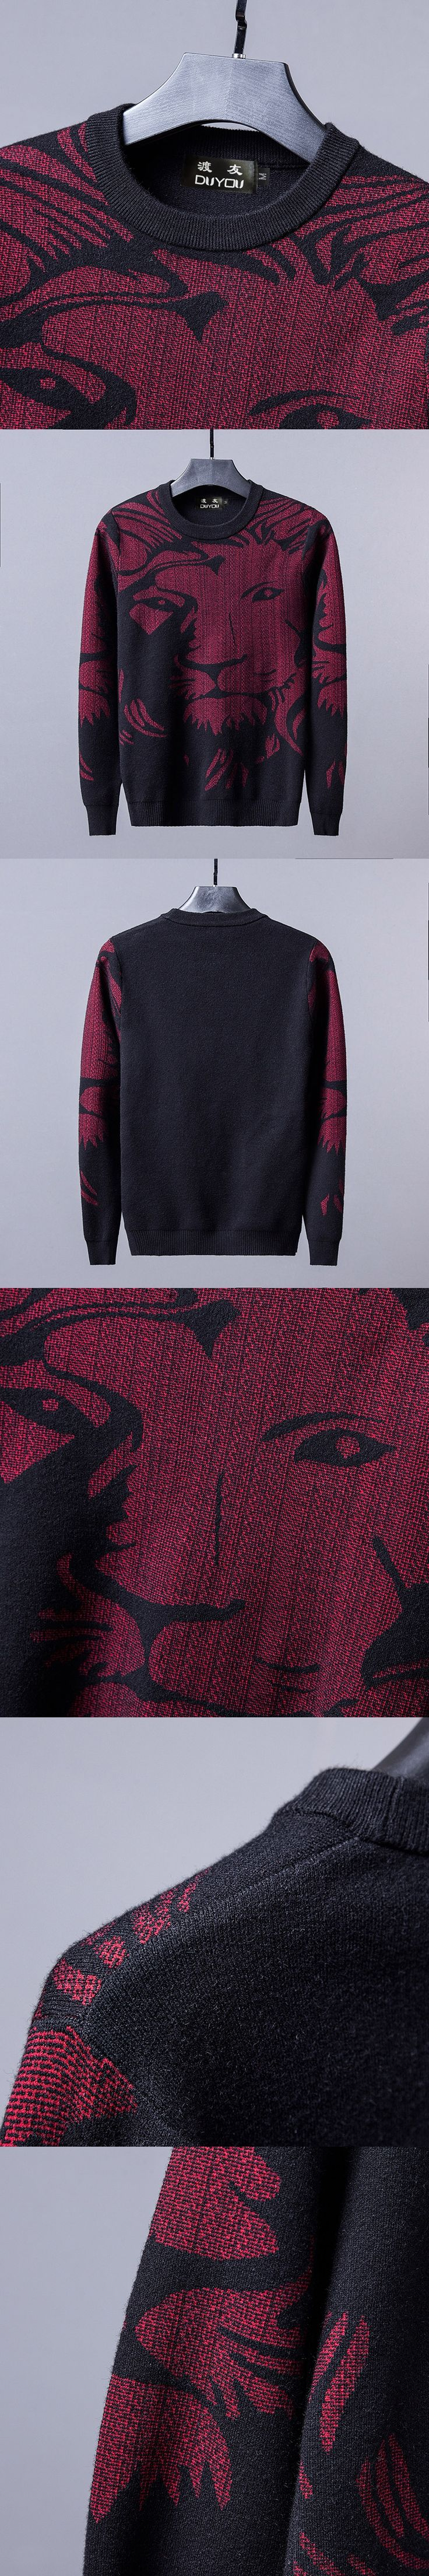 PP Bag Packaging! Brand Men New Autumn Leisure Round neck Wool Pullover Color Matching Sweater Mens Lion King Sweater